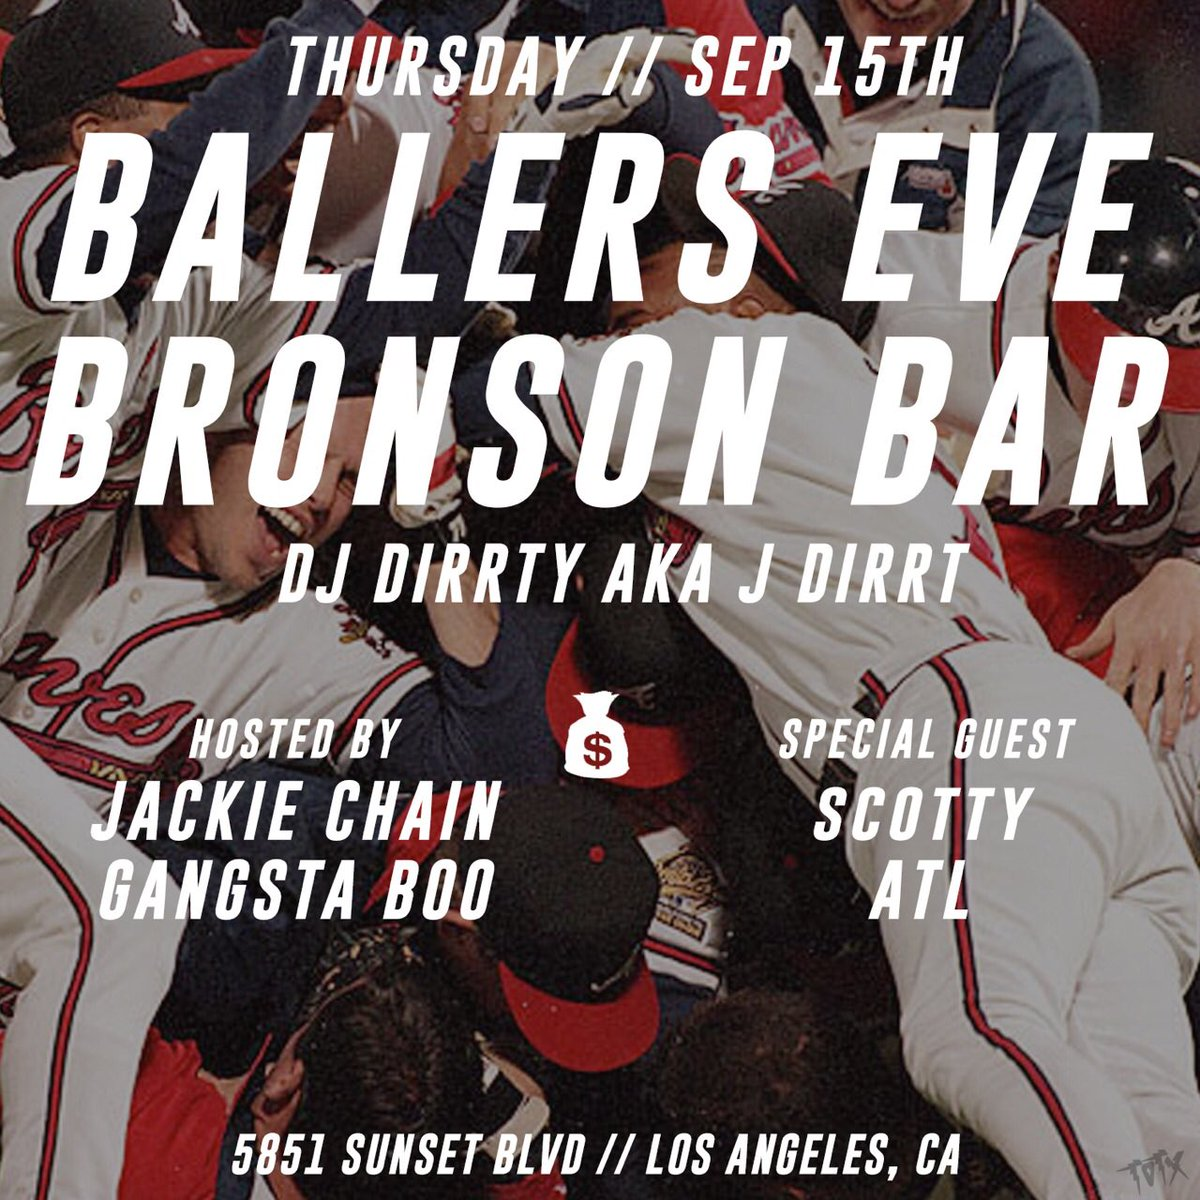 L A we turning up this Thursday!!! And we got special guest @ScottyATL in the building !!! https://t.co/RHUS9dOYO7